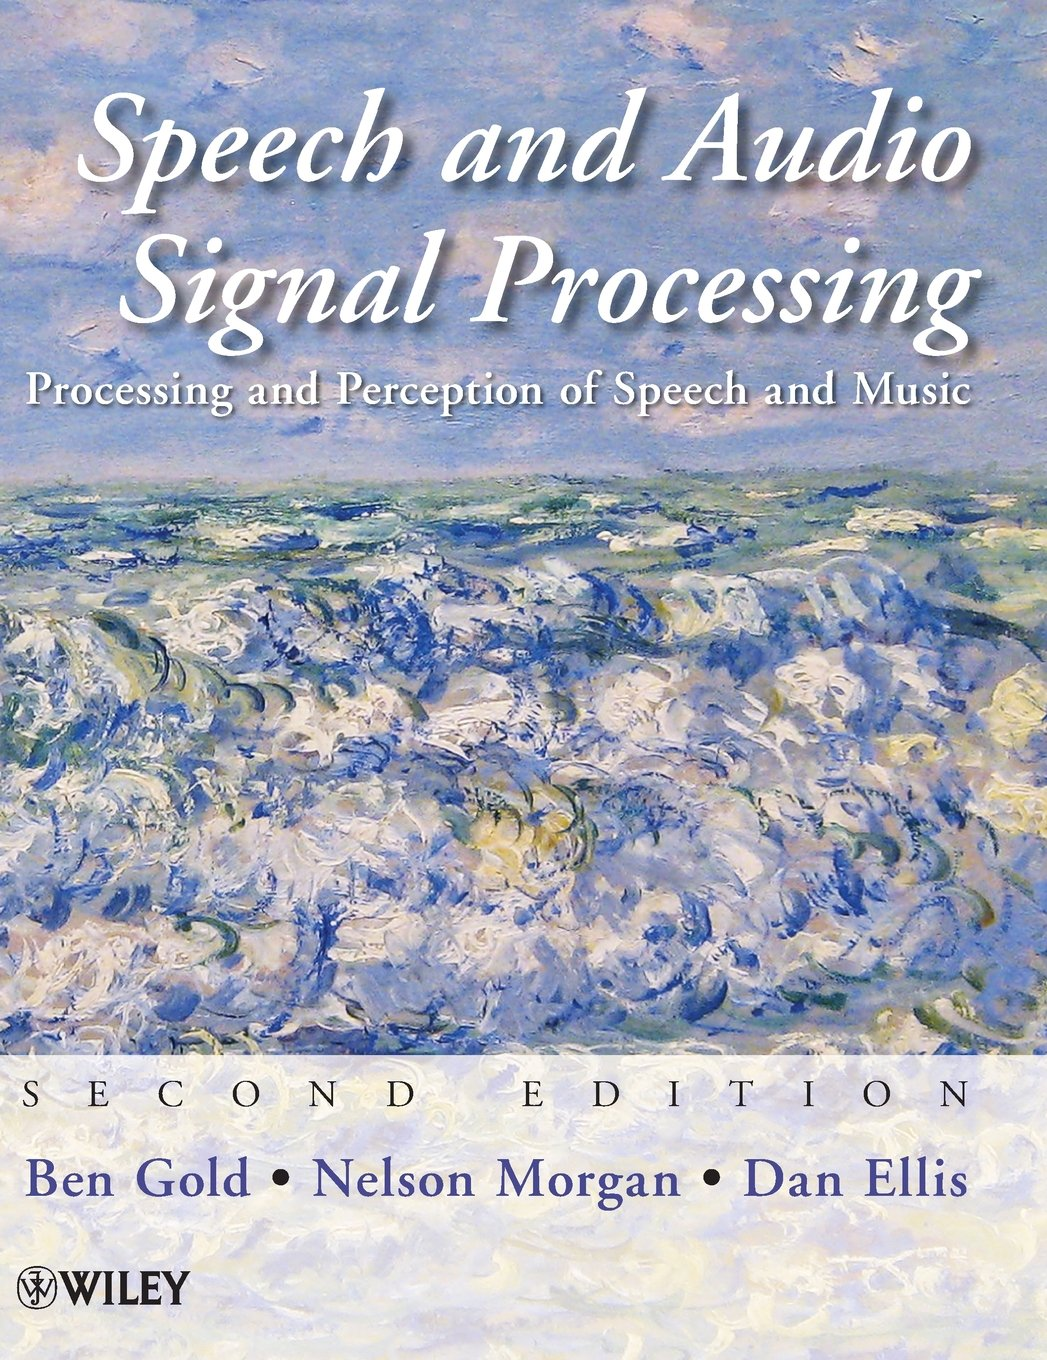 Speech and Audio Signal Processing: Processing and Perception of Speech and Music by Wiley-Interscience